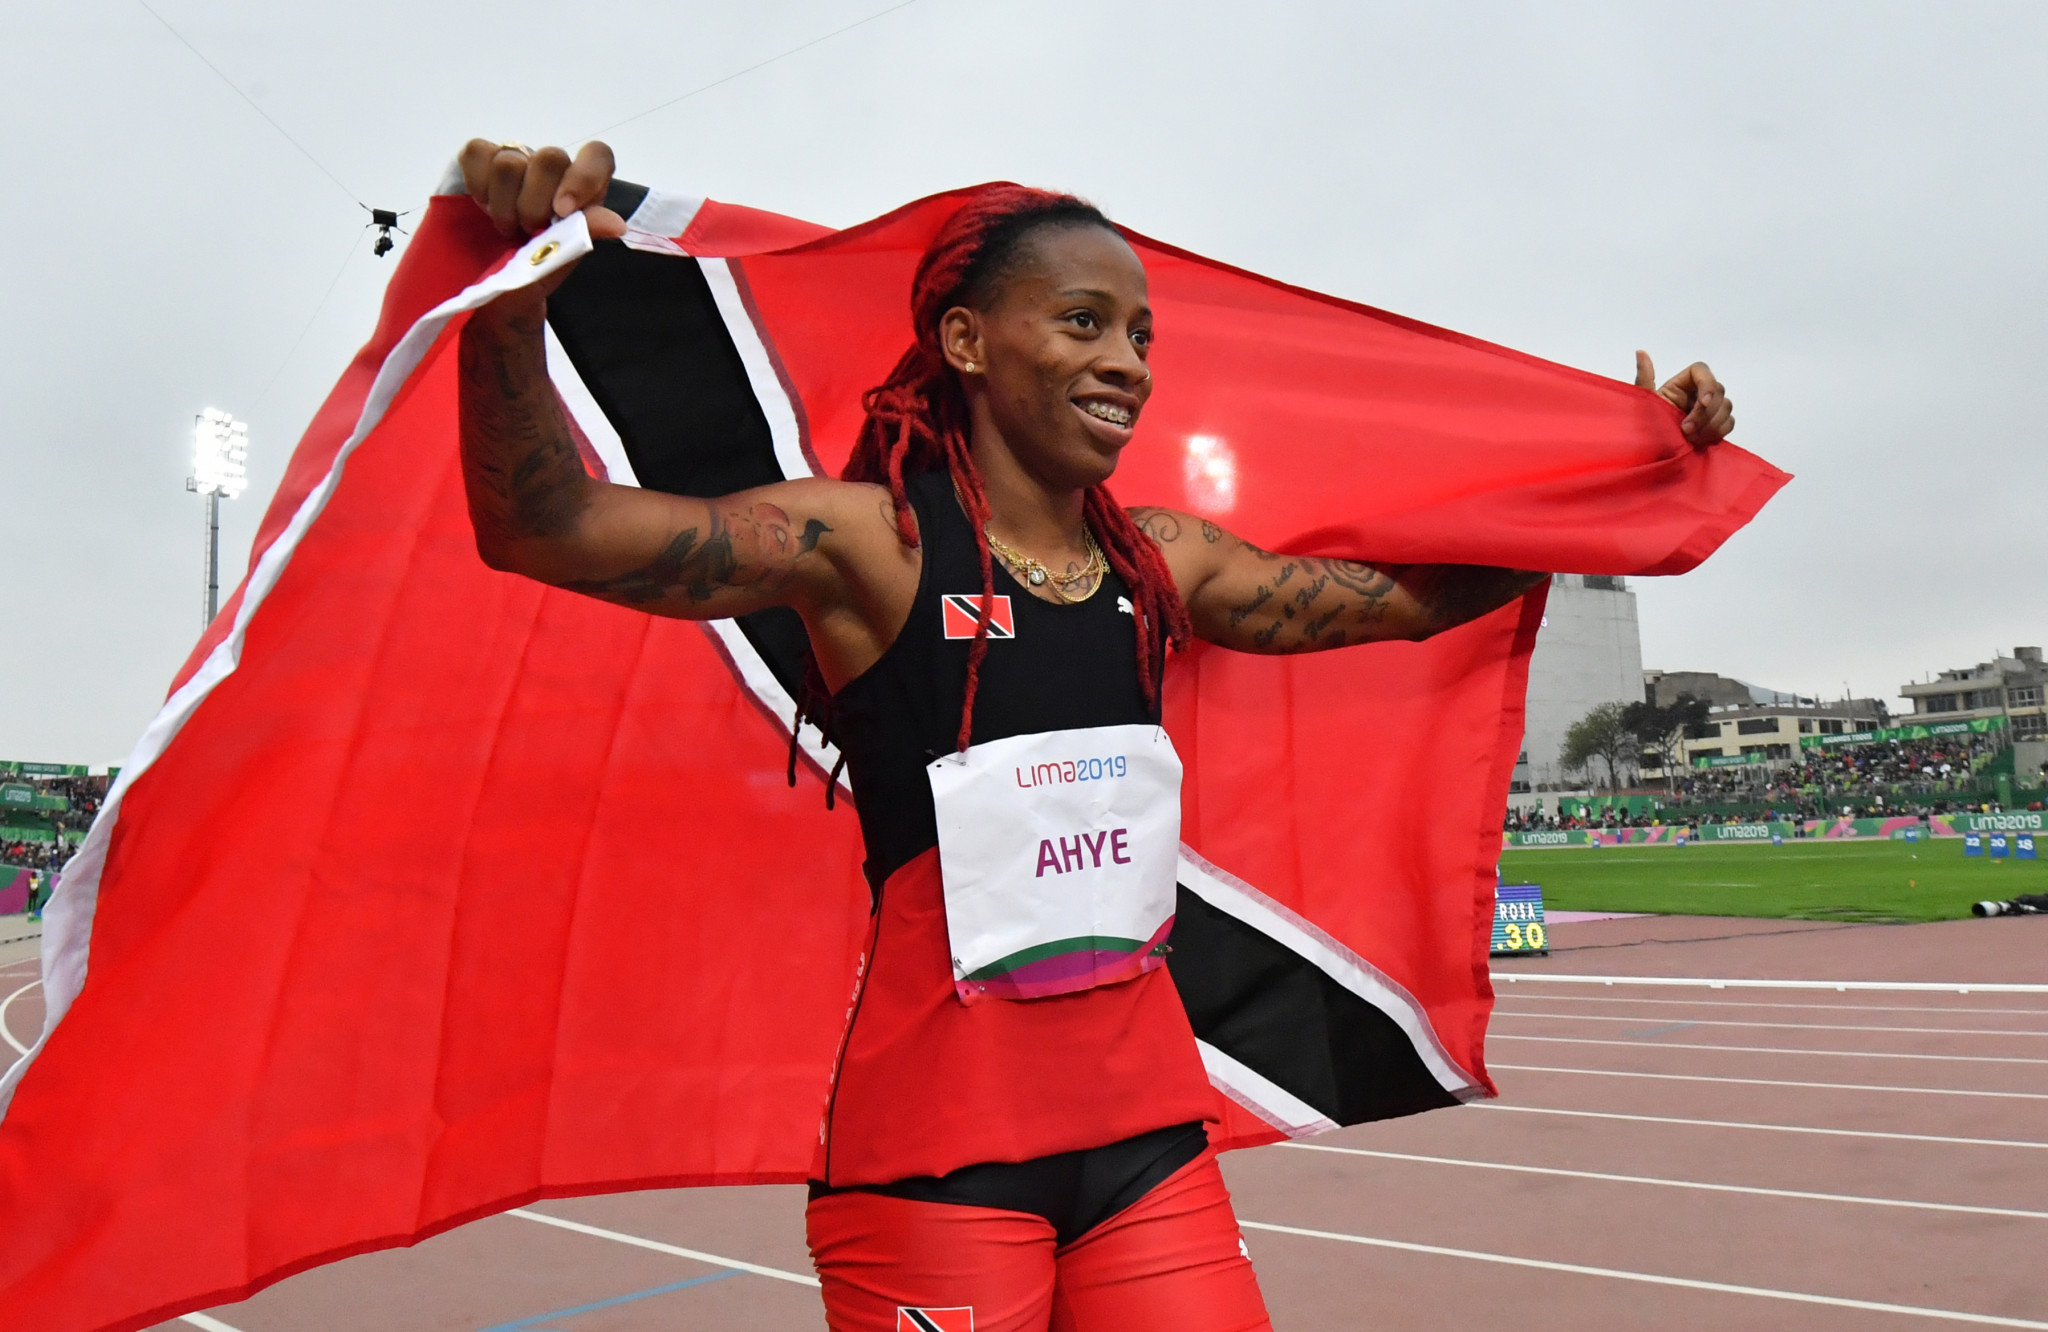 Trinidad and Tobago sprinter Ahye suspended after alleged whereabouts failures